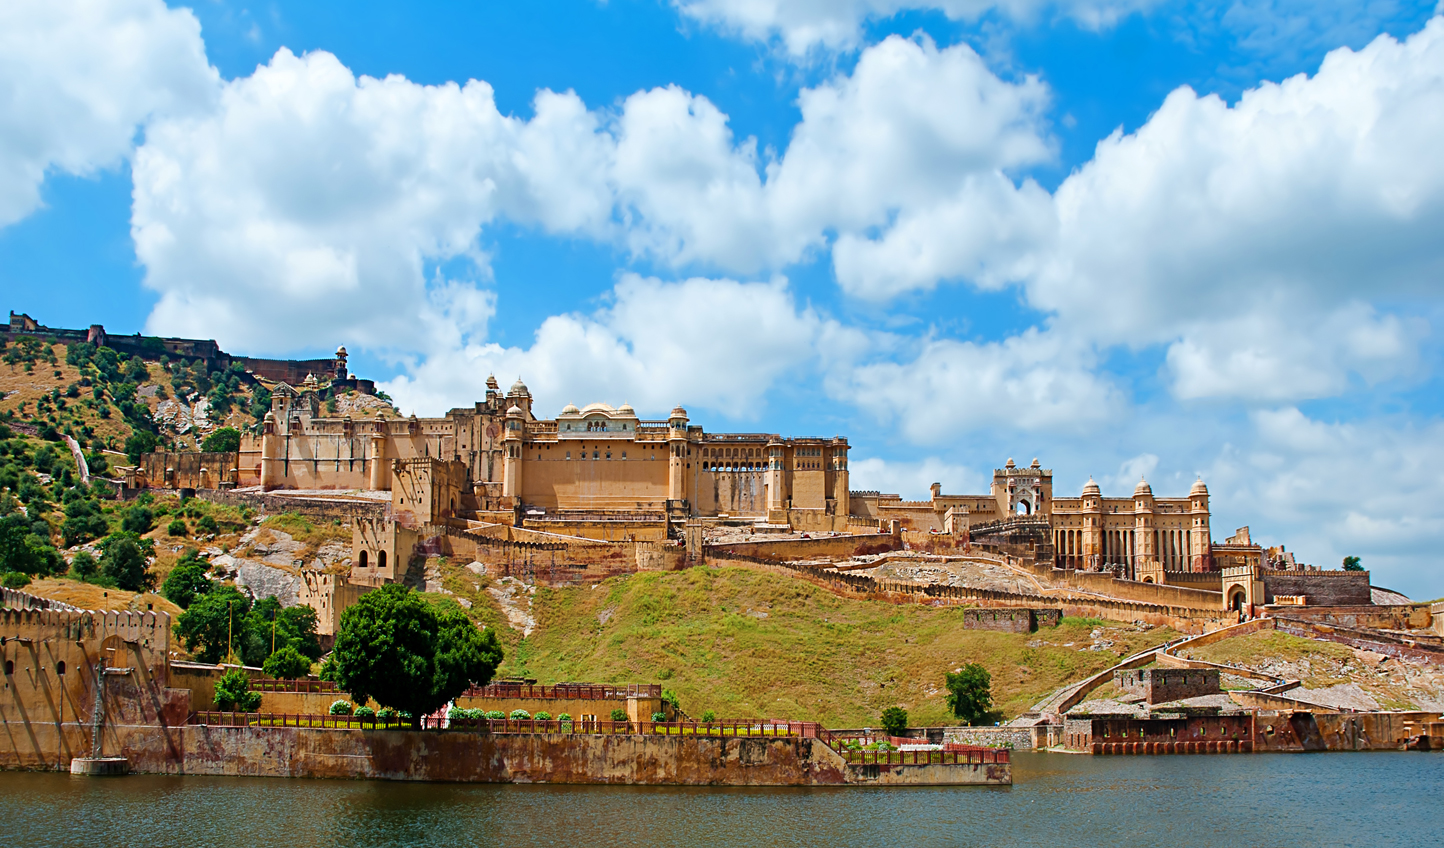 Discover the beautiful Amber Fort